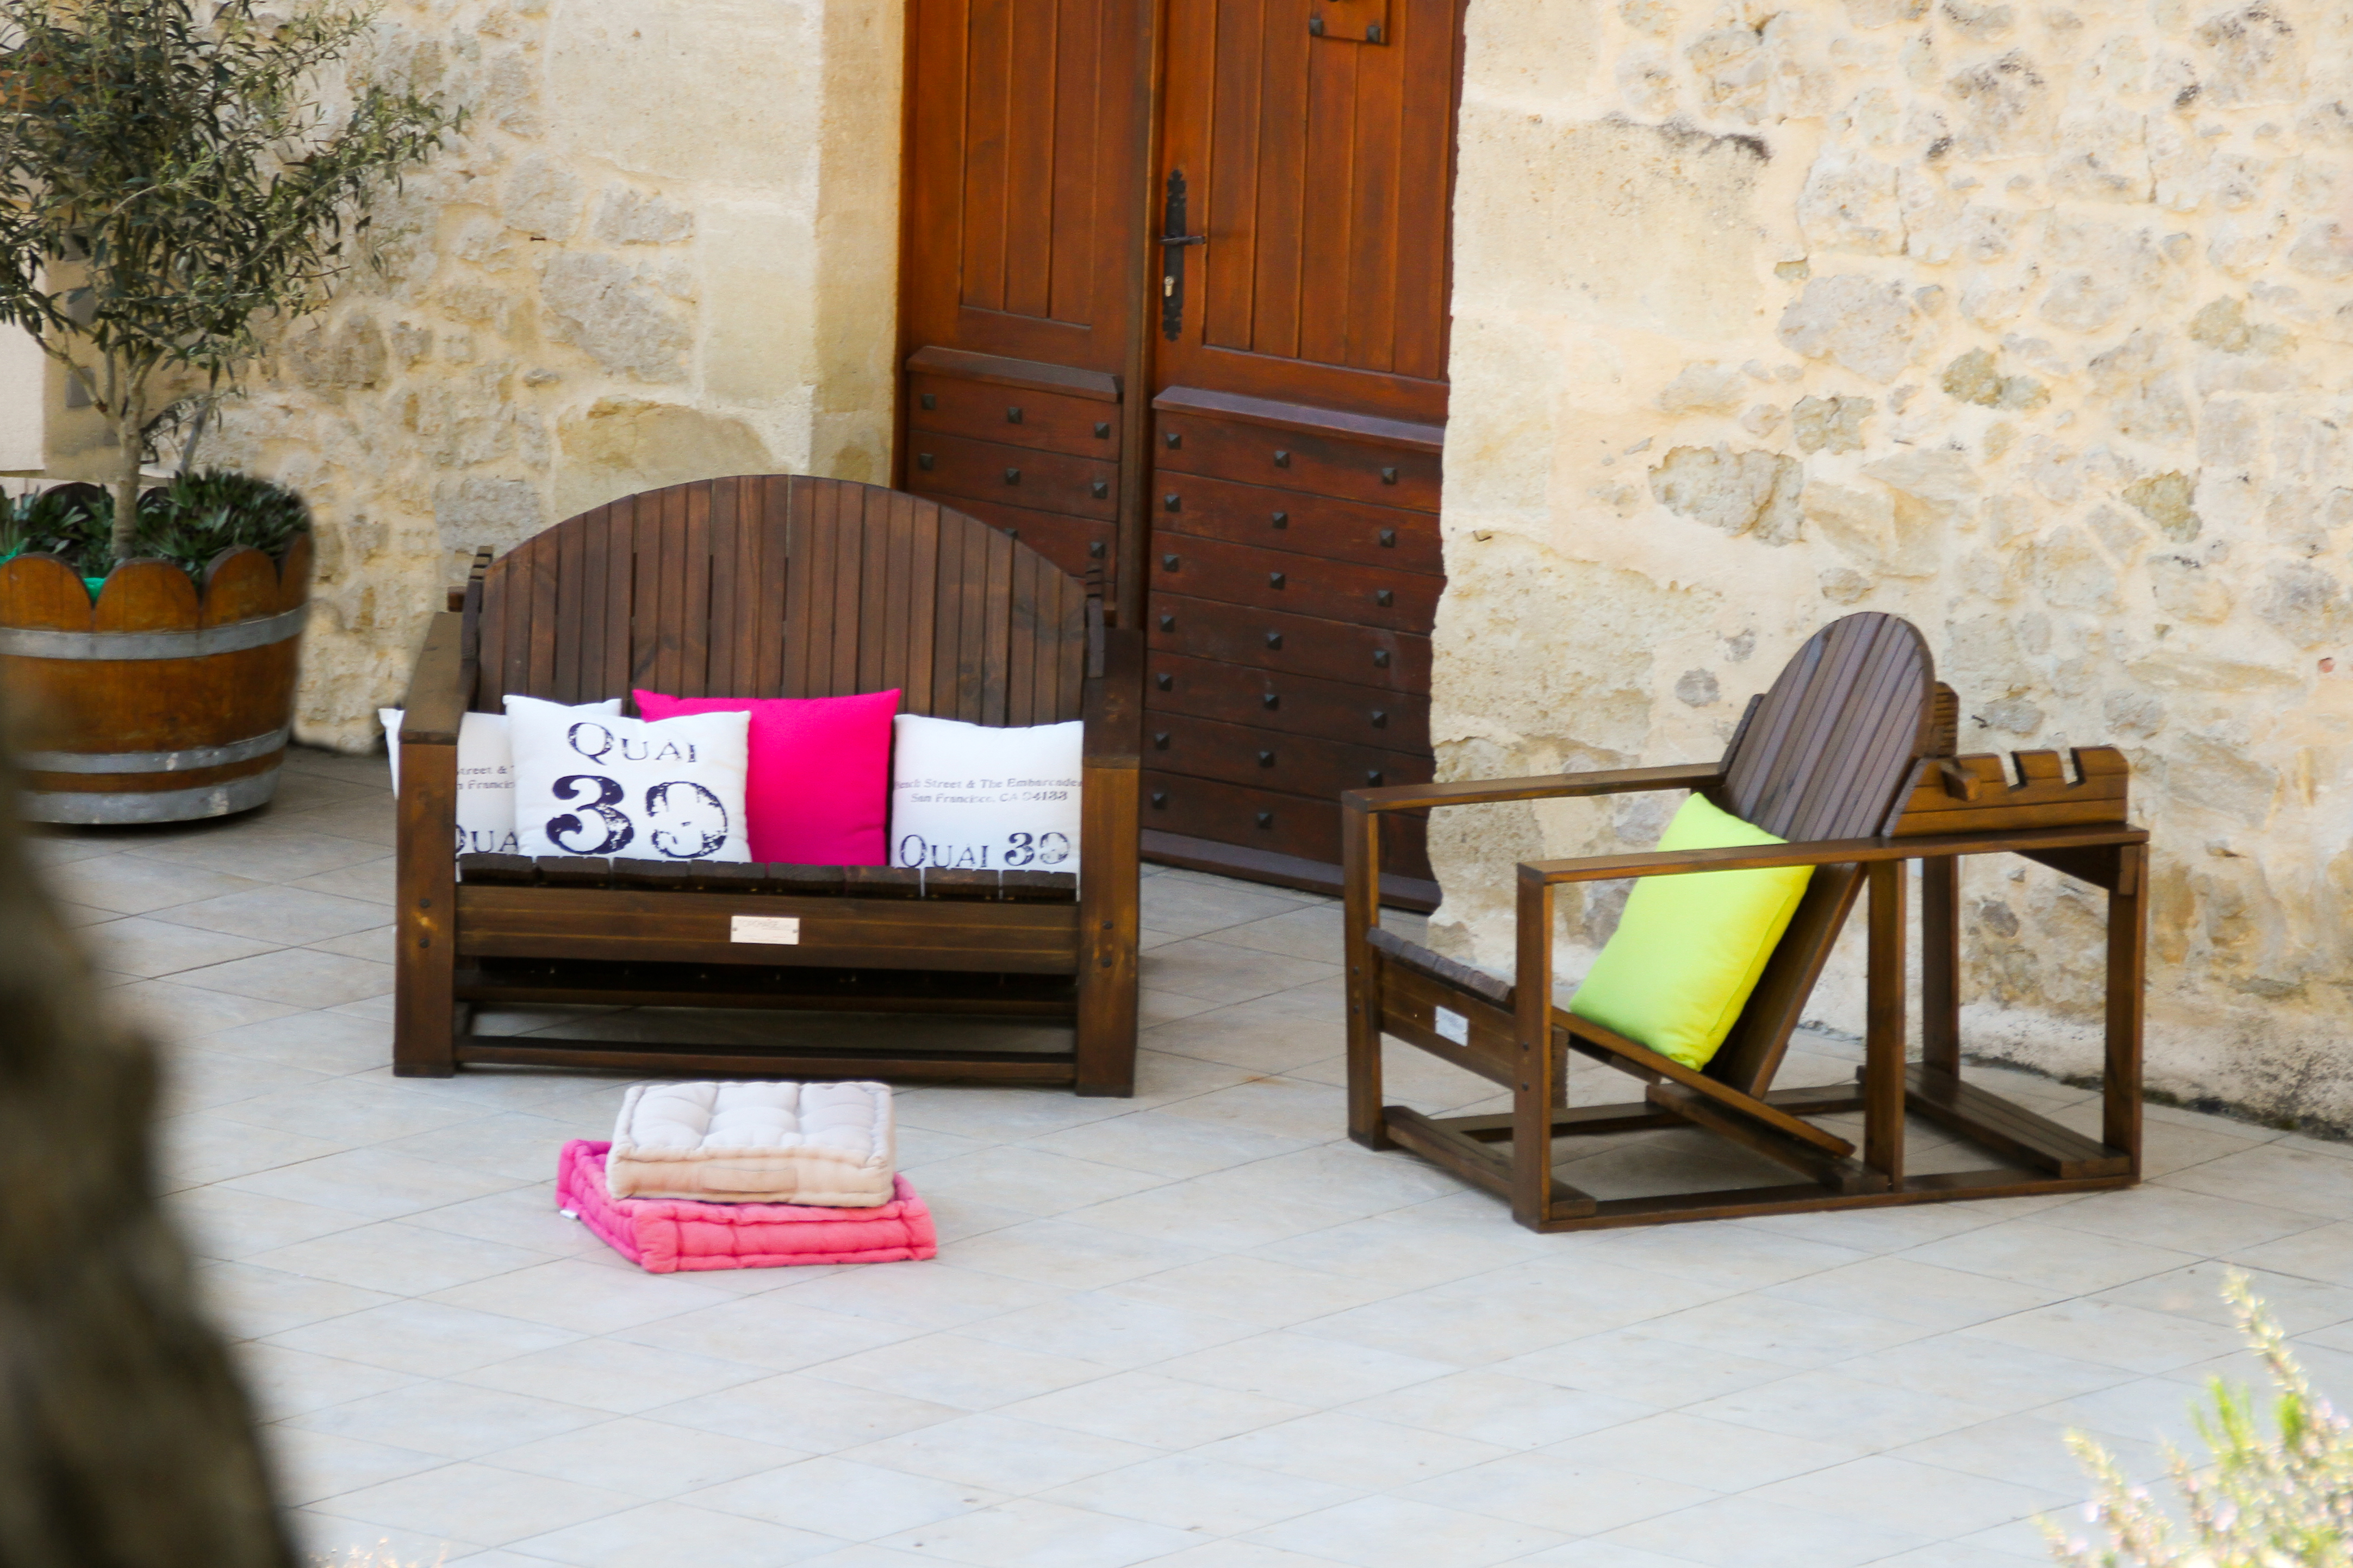 Top chaise-3810